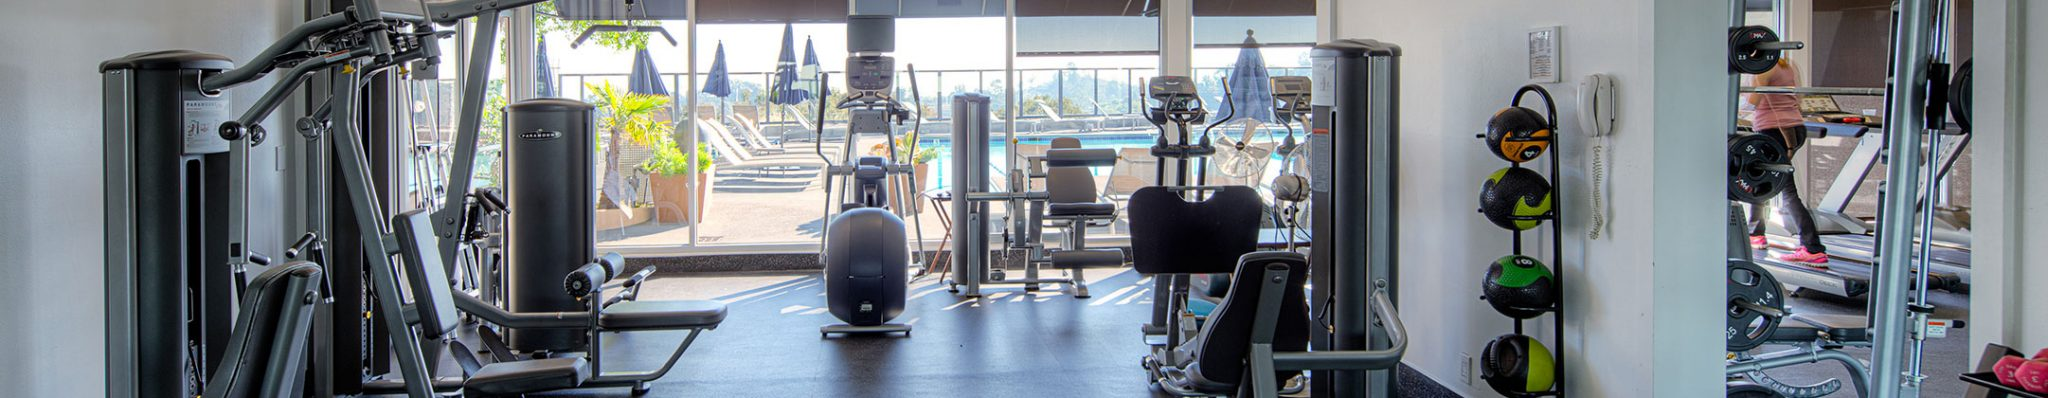 Passionate about Fitness? Try a New Gym Start Up